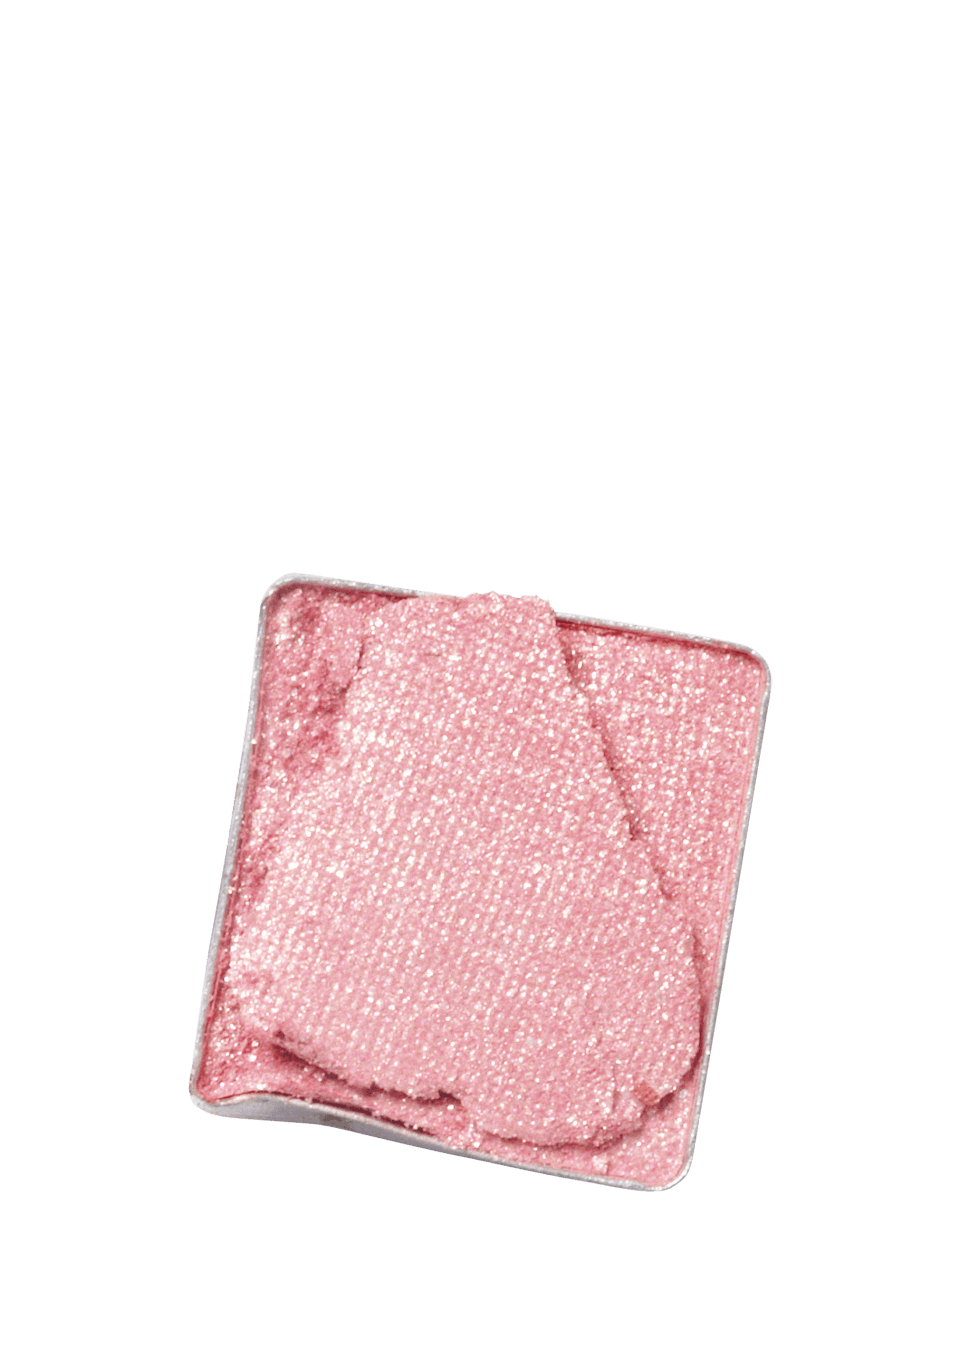 Personal Care - Annemarie Borlind Powder Eye Shadow - Light Rose, 2g